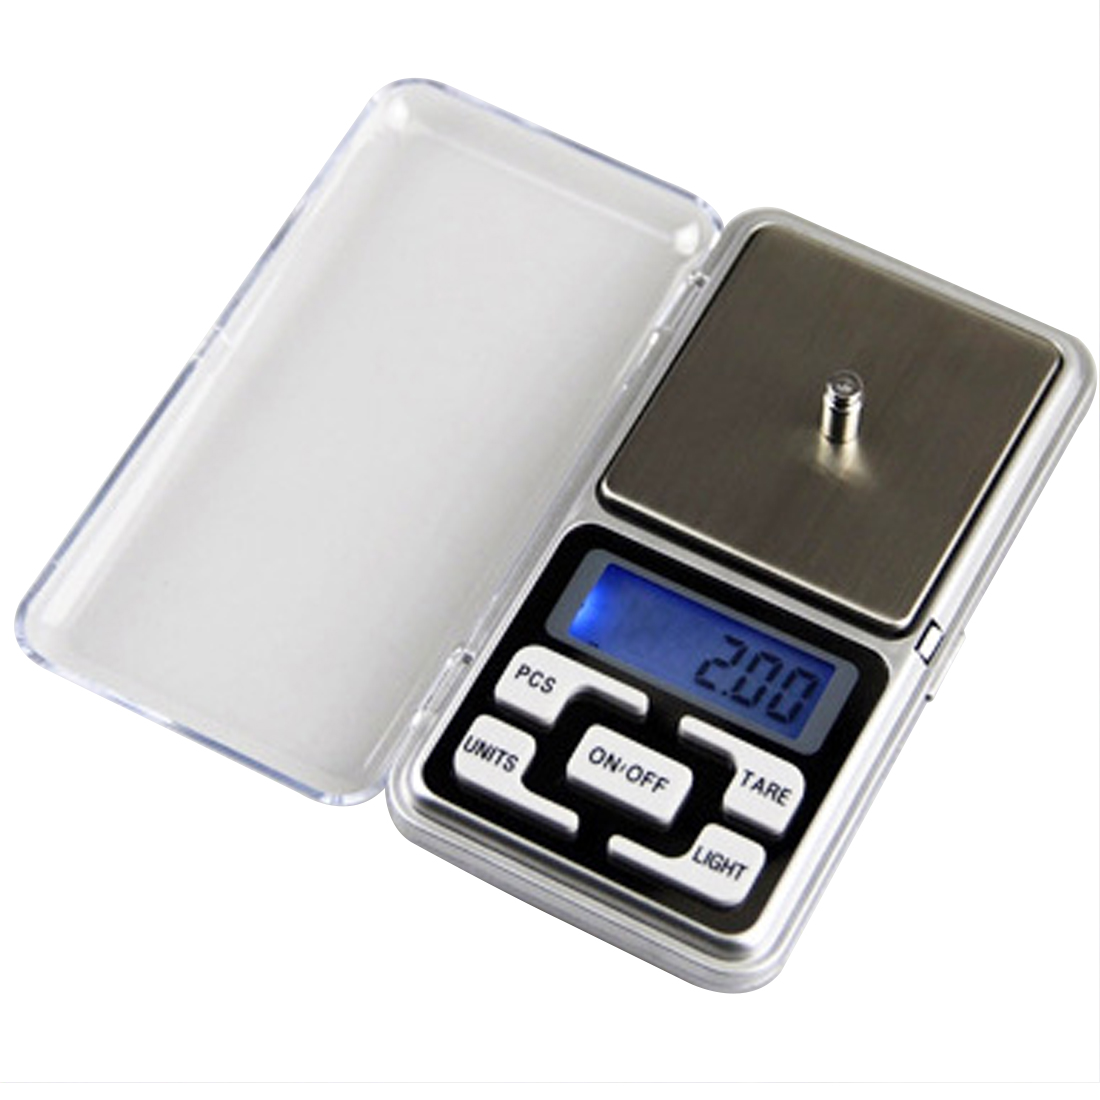 200g*<font><b>0.01g</b></font> Weighing <font><b>Scale</b></font> Weight <font><b>Scales</b></font> Balance g/oz/ct/tl Electronic LCD Display <font><b>scale</b></font> Mini <font><b>Pocket</b></font> <font><b>Digital</b></font> <font><b>Scale</b></font> the balance image